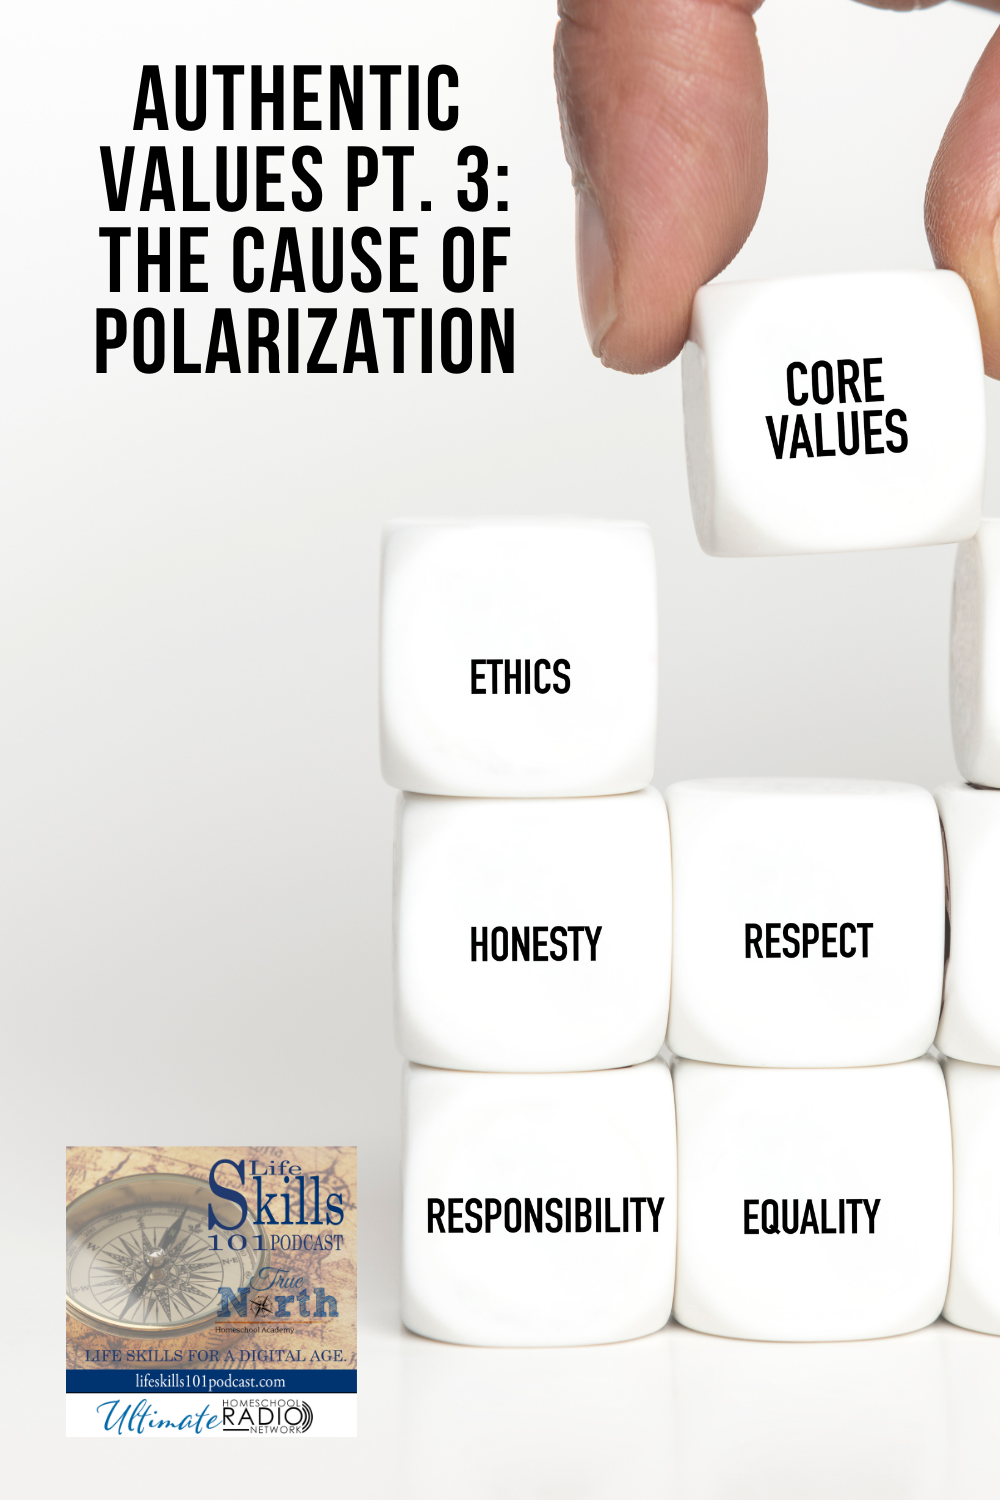 Authentic Values: The Cause of Polarization